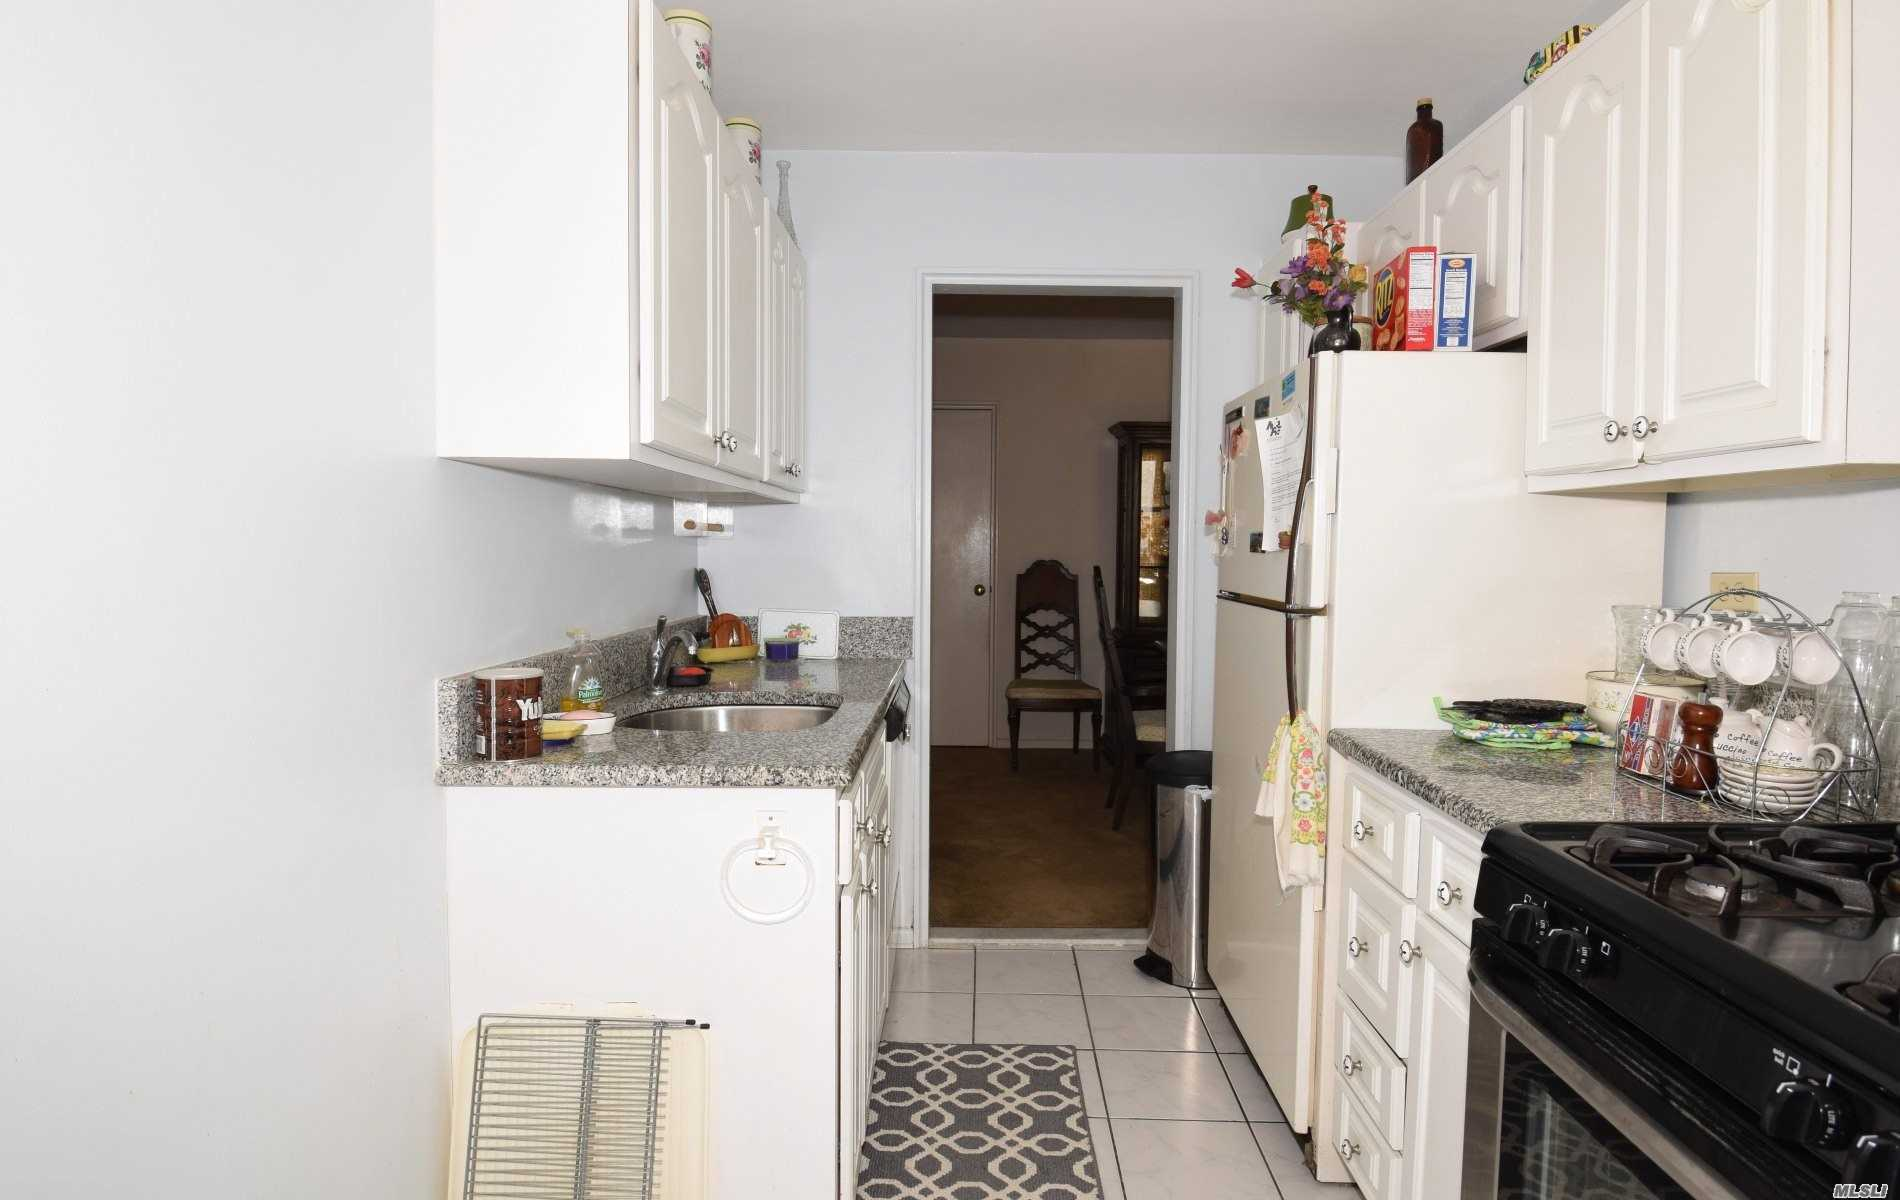 Sunny And Spacious 1100 Sq Ft (Junior 4) Corner Unit Apartment In A Great Building-Largest Junior 4 Model. Maintenance Includes All Utilities (Heat, Water, Gas, Electric). Convenient To Transportation, Express Bus To Manhattan And Bay Terrace Shopping. Elevator Building! Parking Space Available $31/Monthly. Plenty Of Closets Throughout. Seller Paid Assessment.